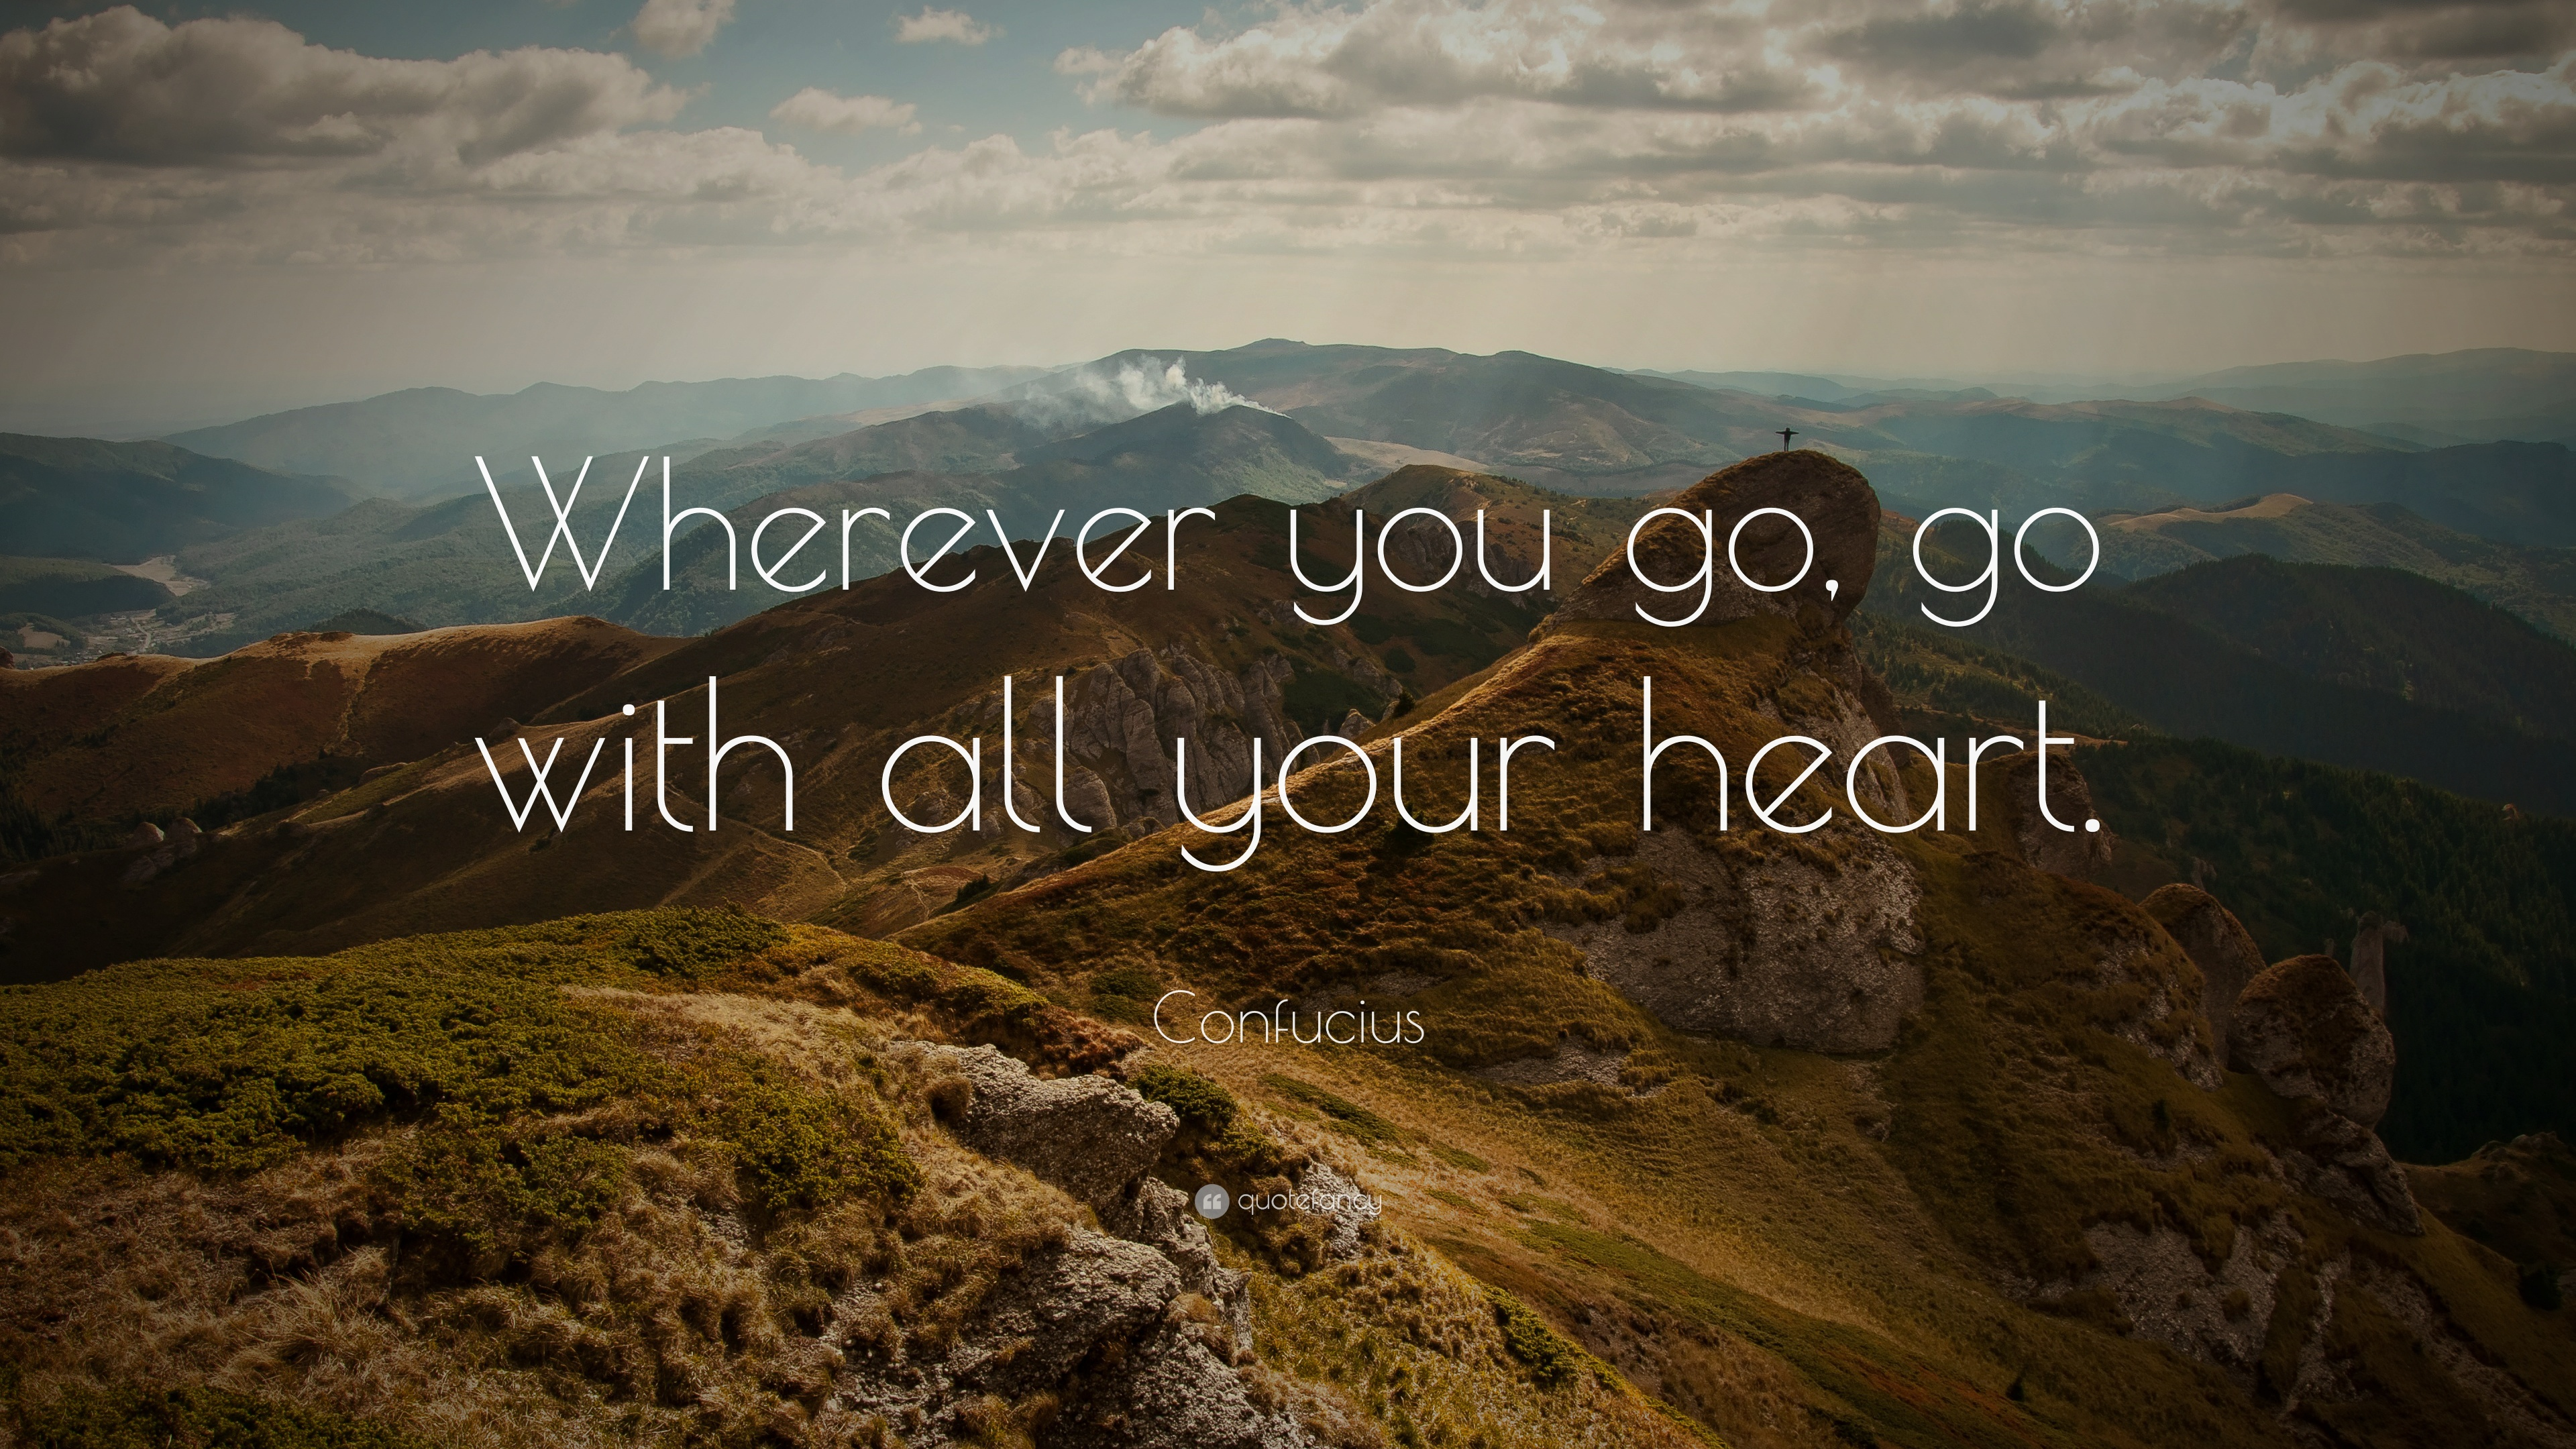 Travel Quotes (40 Wallpapers)